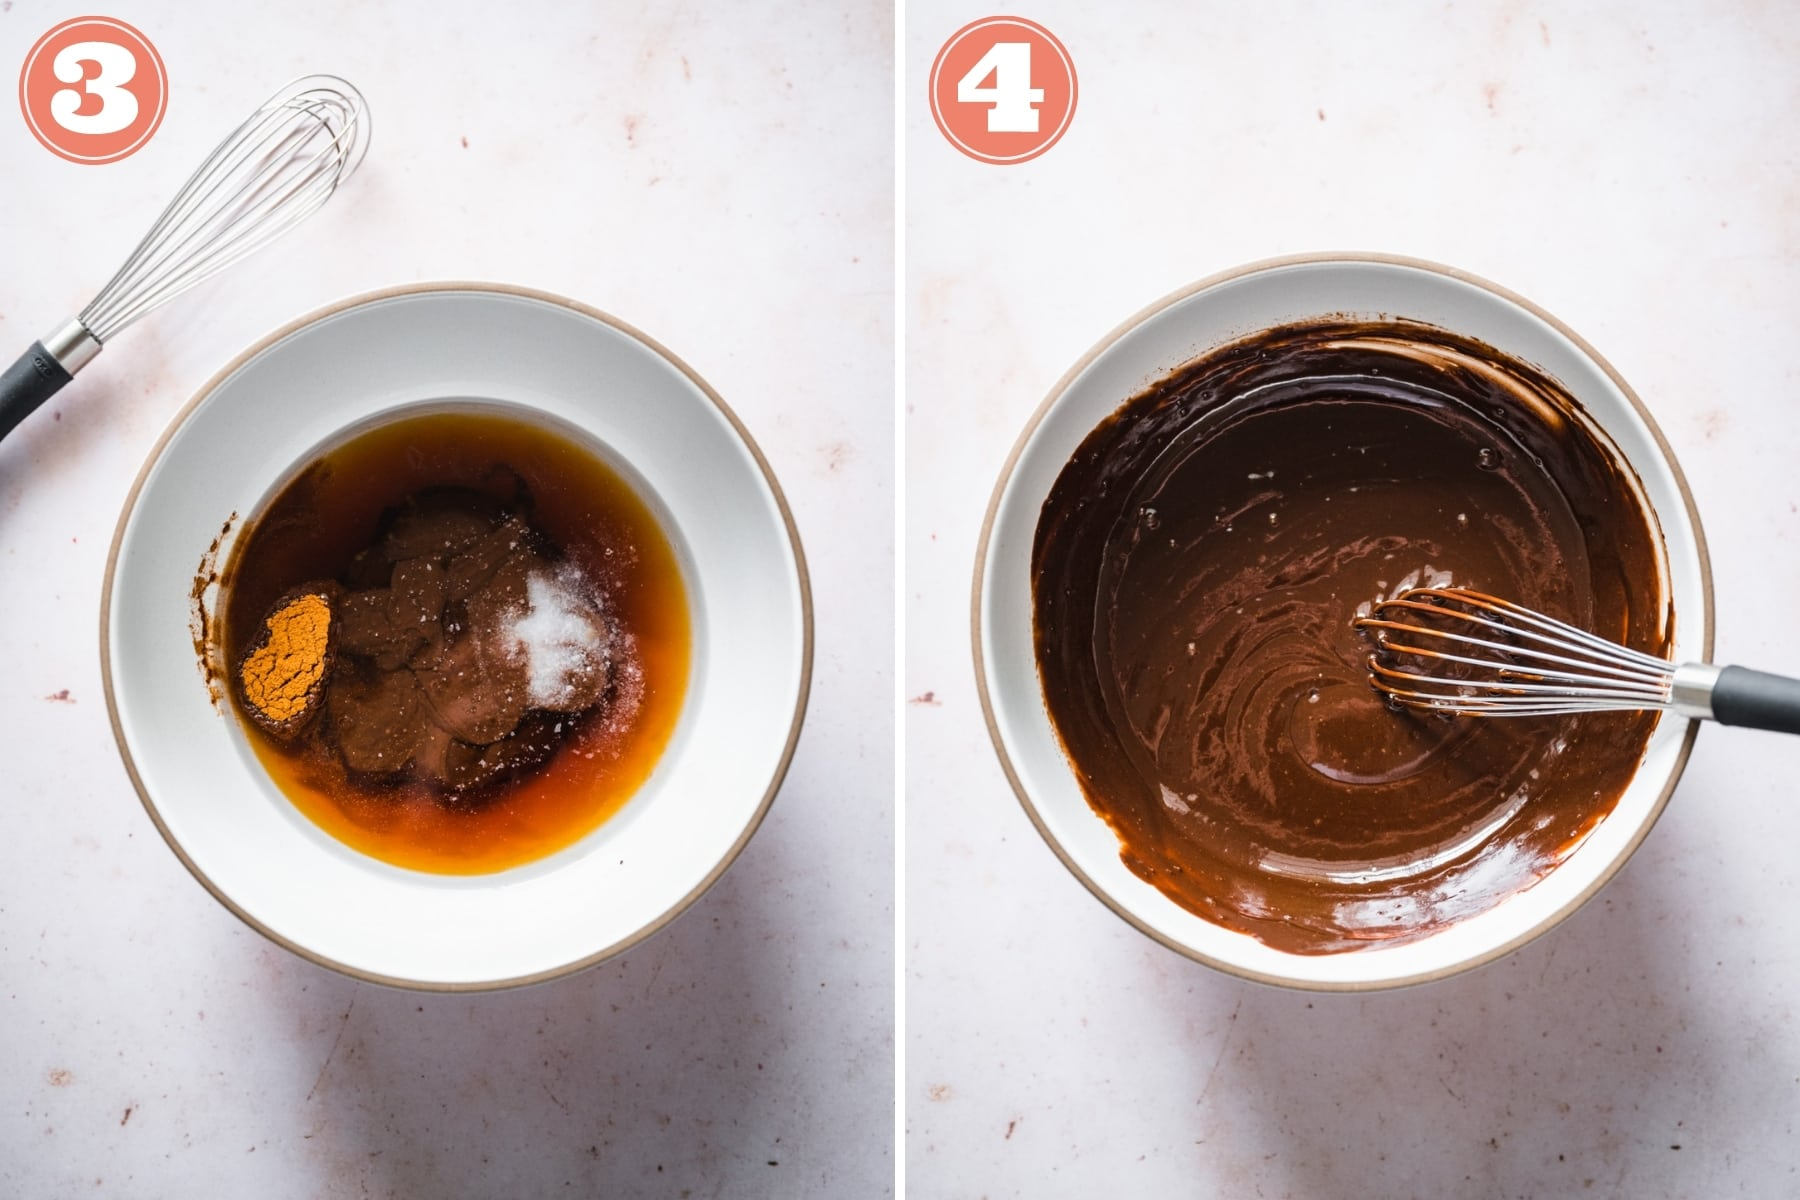 before and after stirring together wet ingredients for chocolate hazelnut granola.